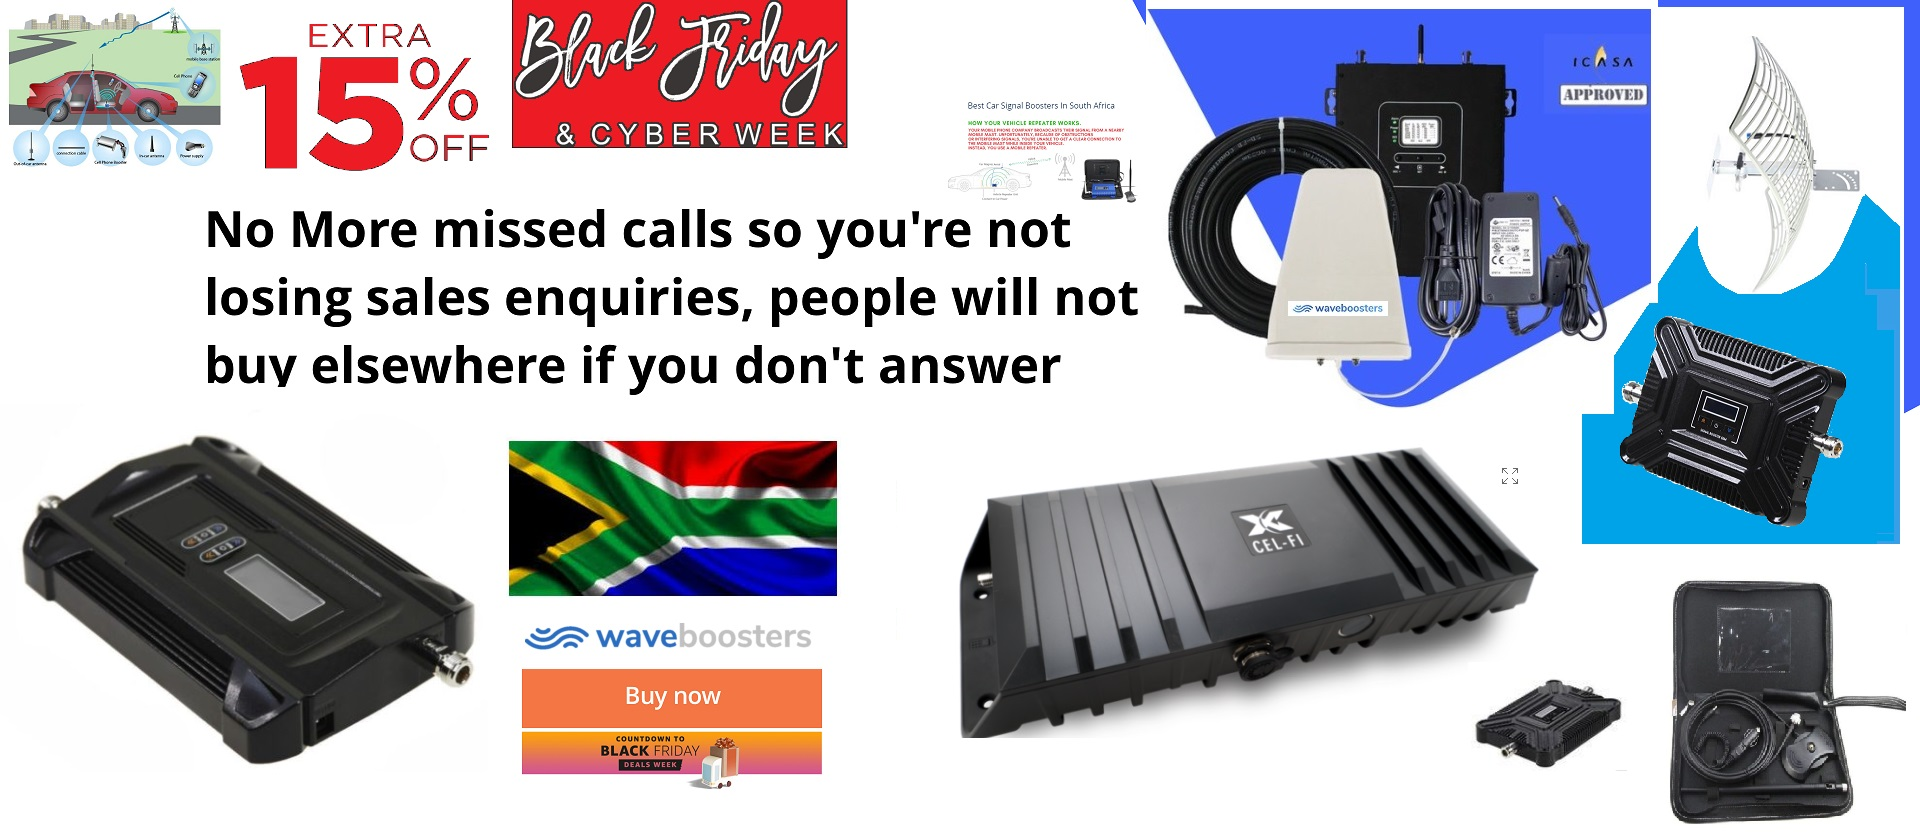 15% Off Black Friday Offer For A Signal Booster